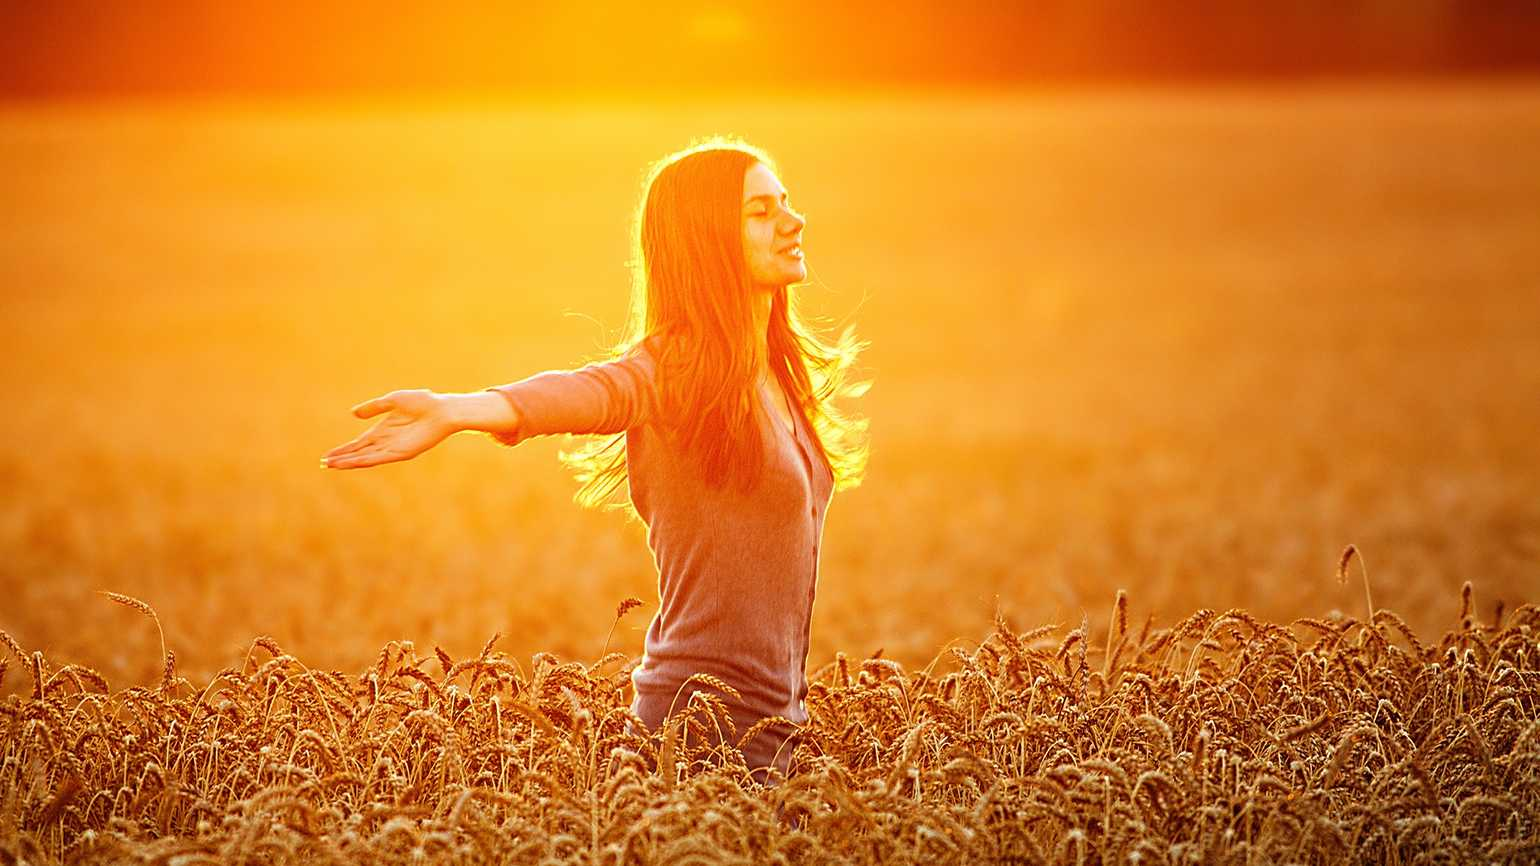 Woman with arms outstretched in sun-drenched wheat field